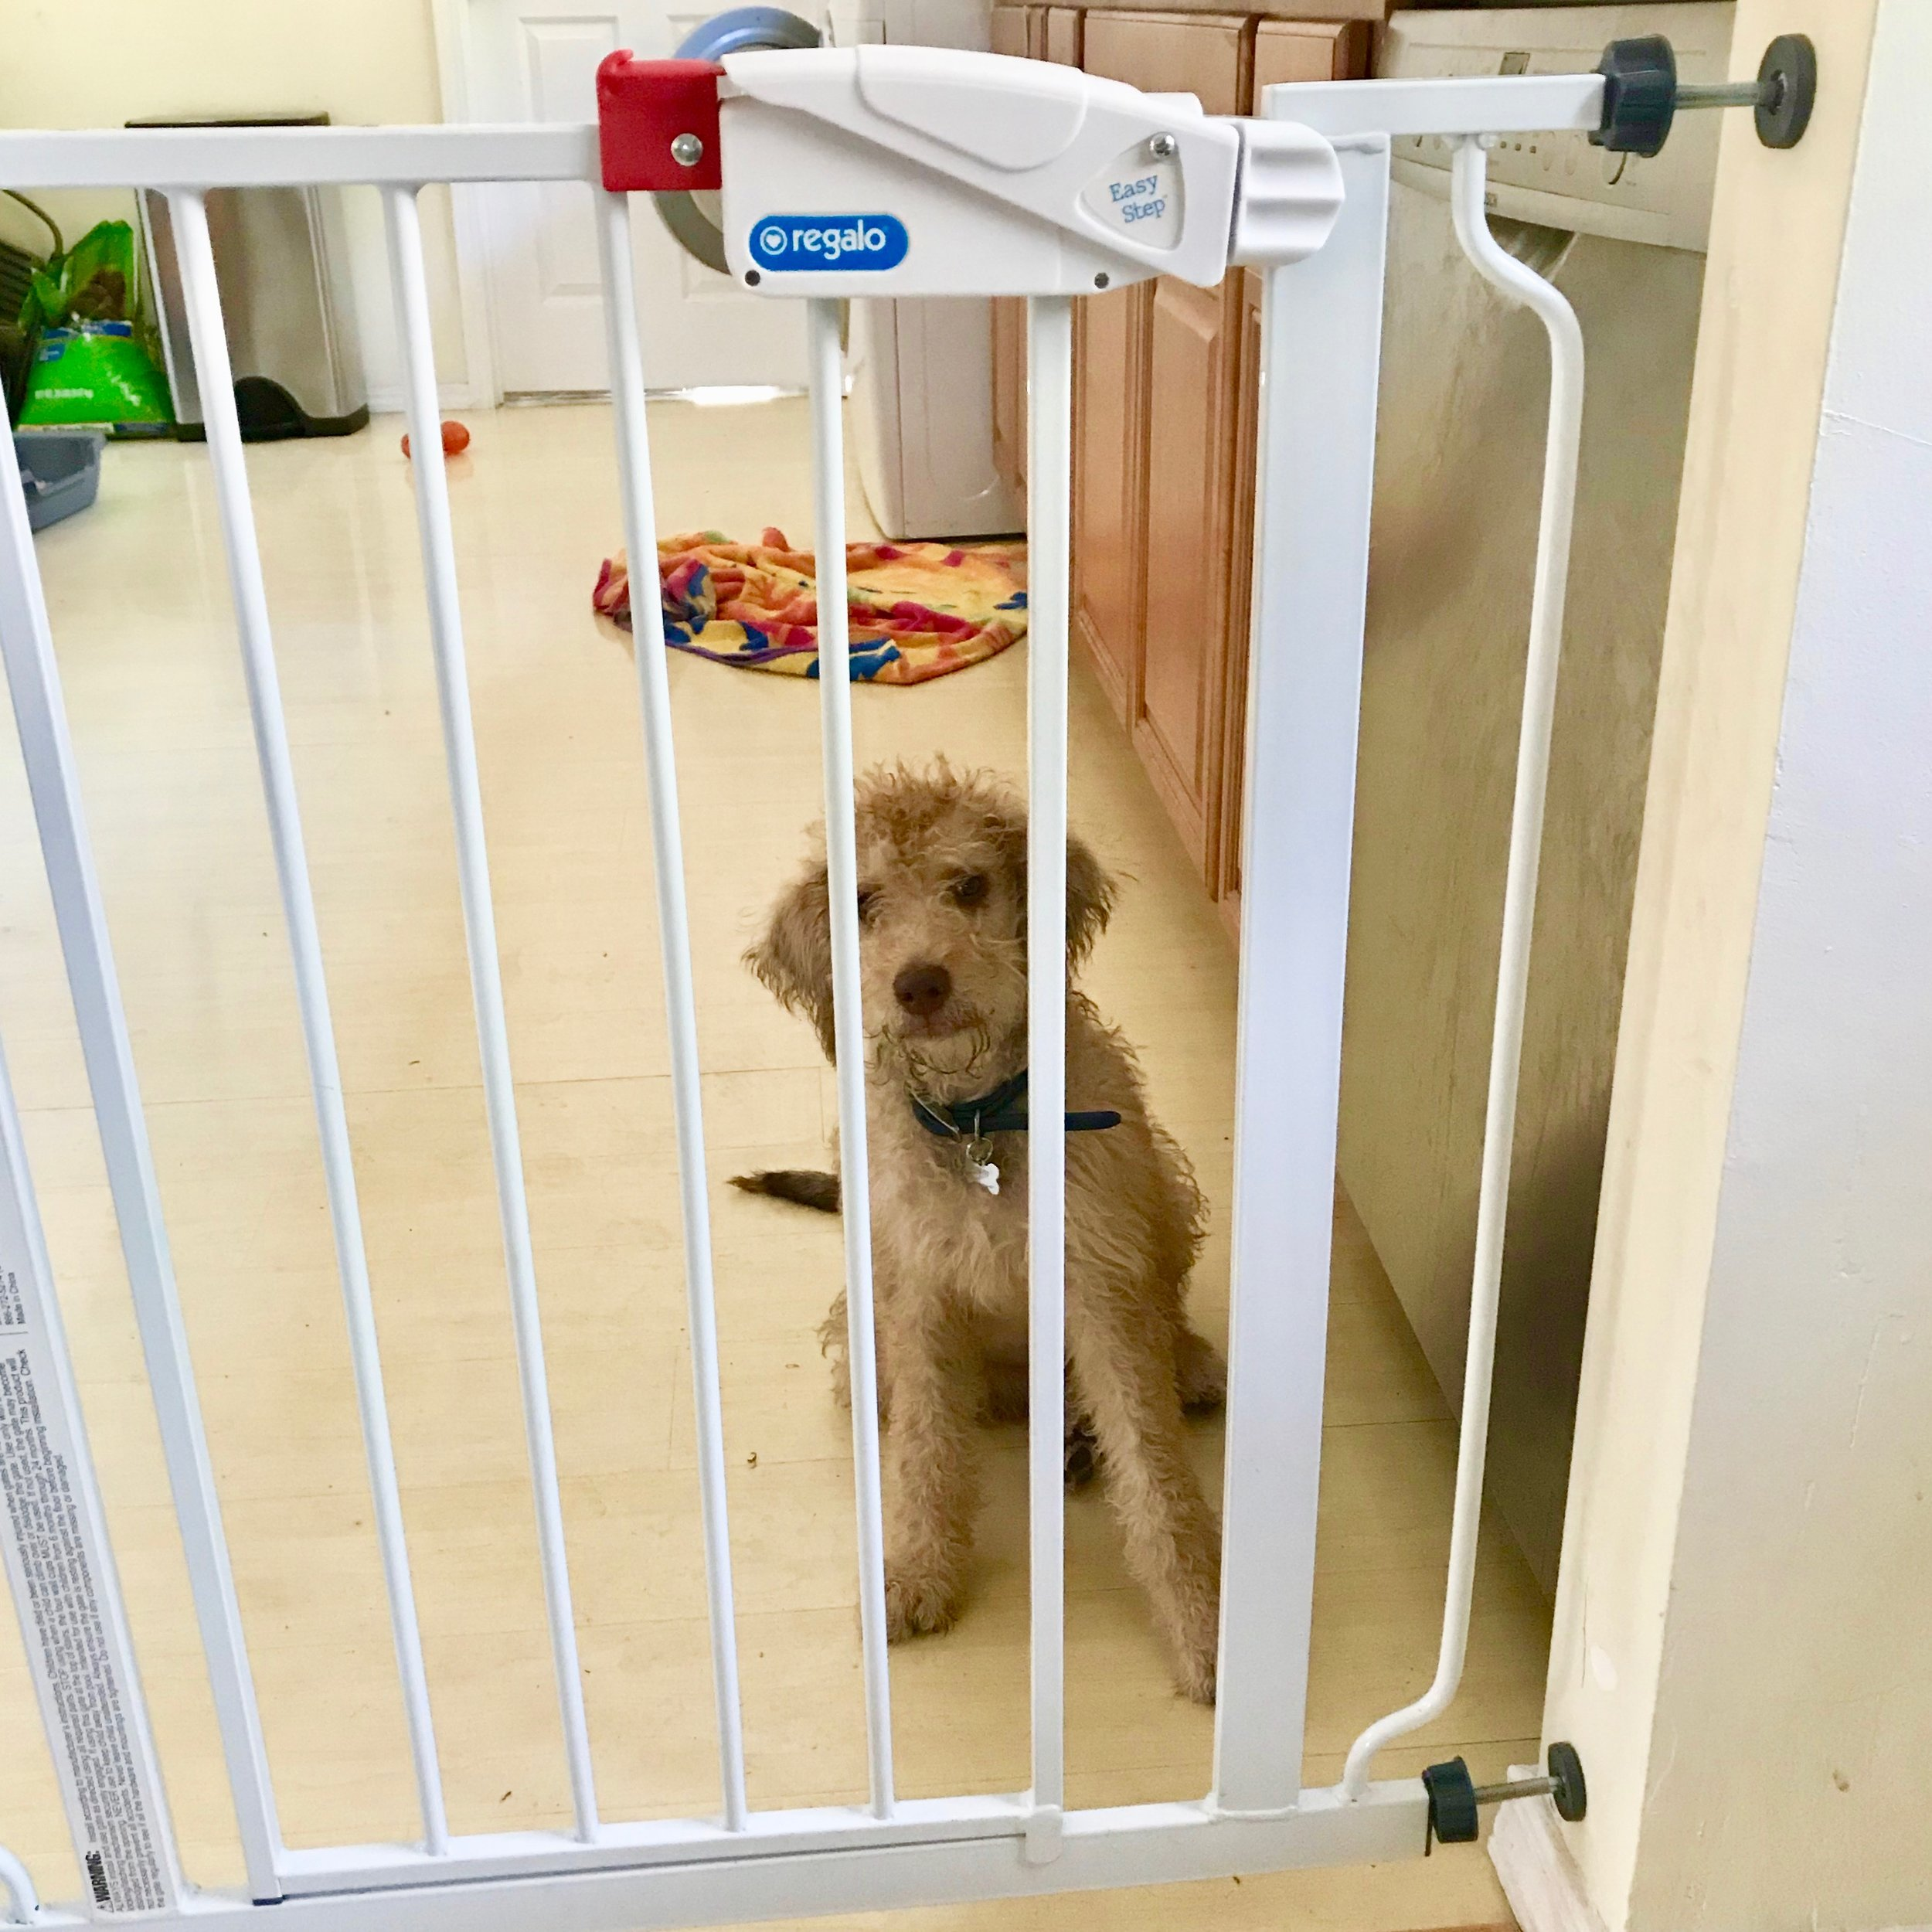 How to train a Goldendoodle puppy in Los Angeles.